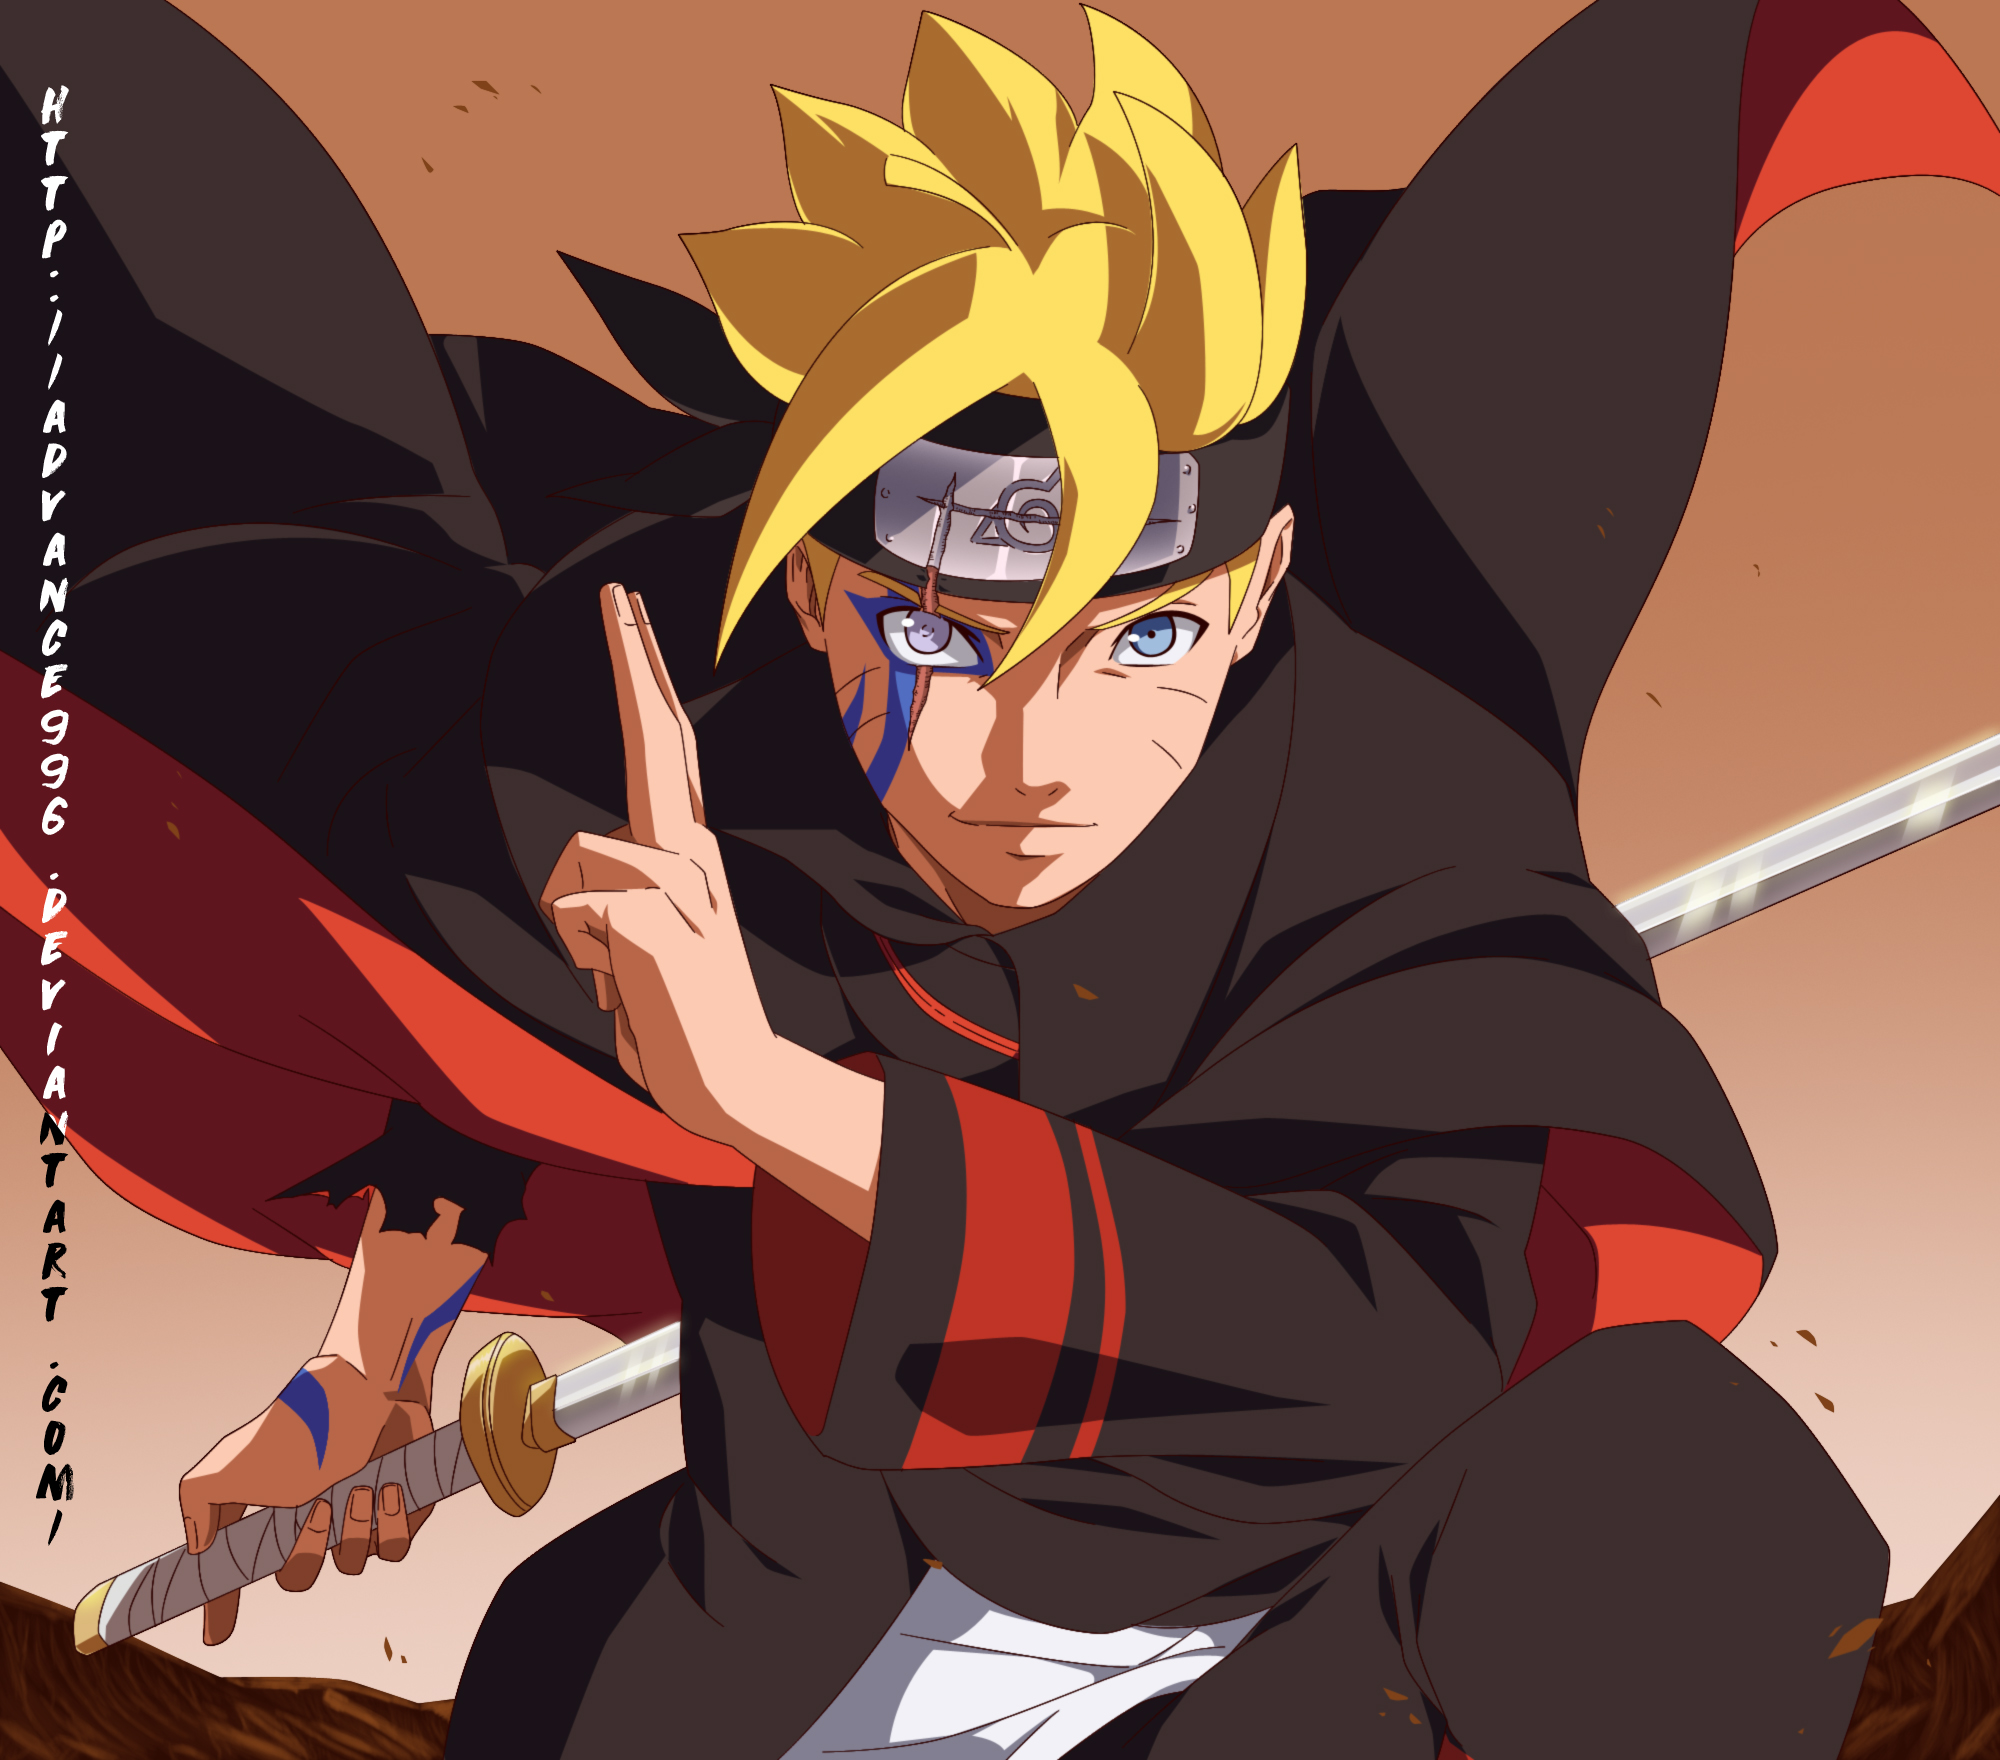 Uzumaki Boruto By Advance996 On DeviantArt